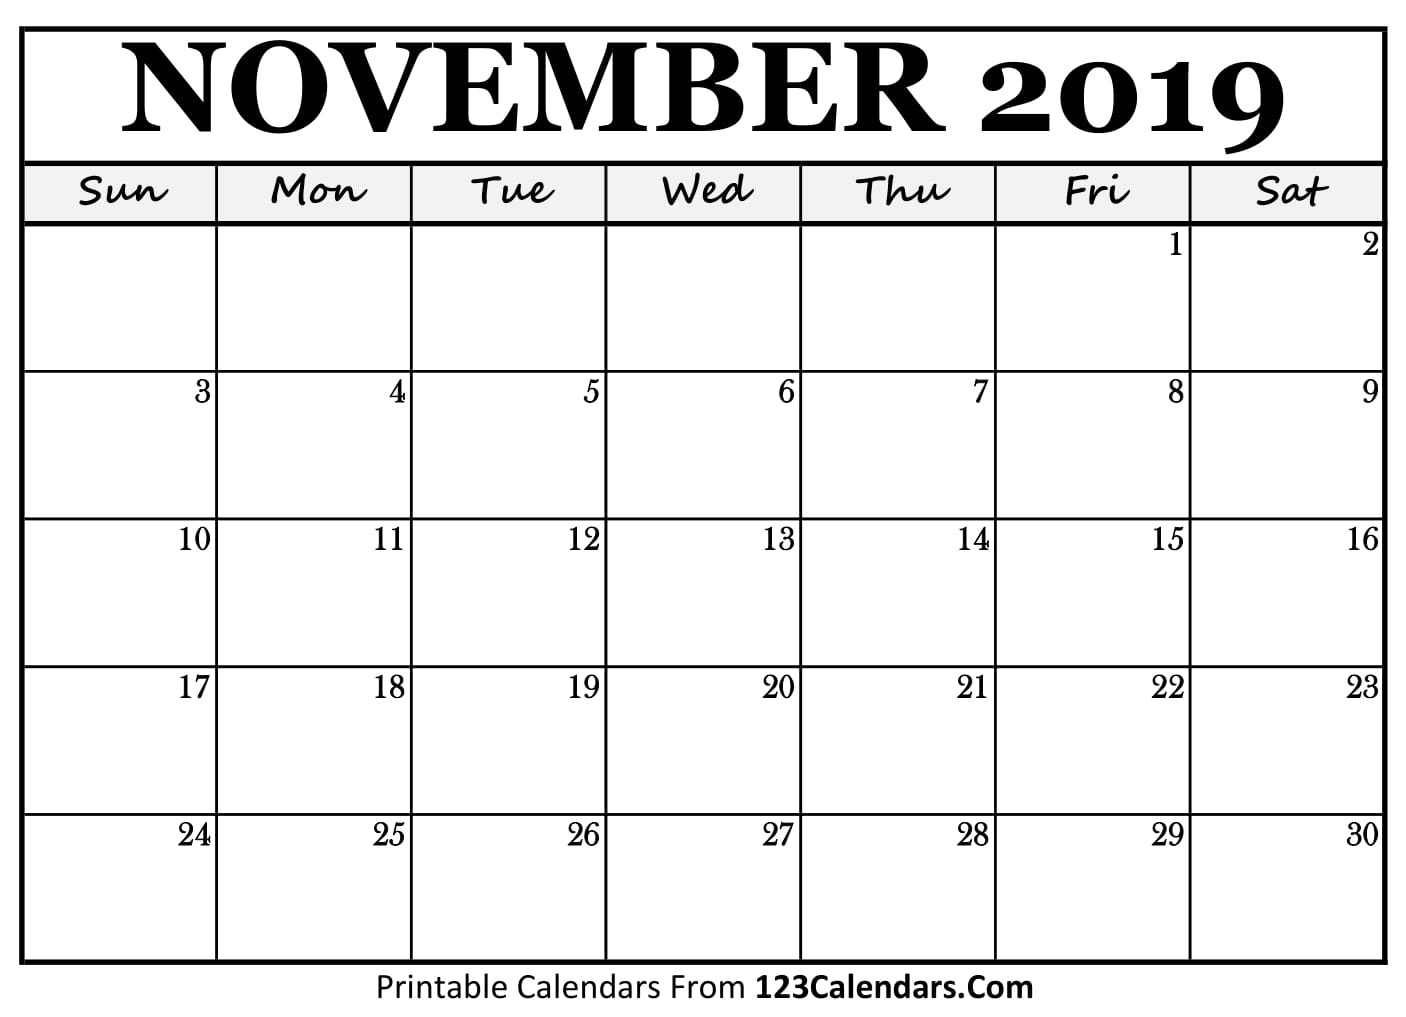 Download Free PDF November 2018 Calendar Doc Templates With Holidays Word Excel T o Print Editable